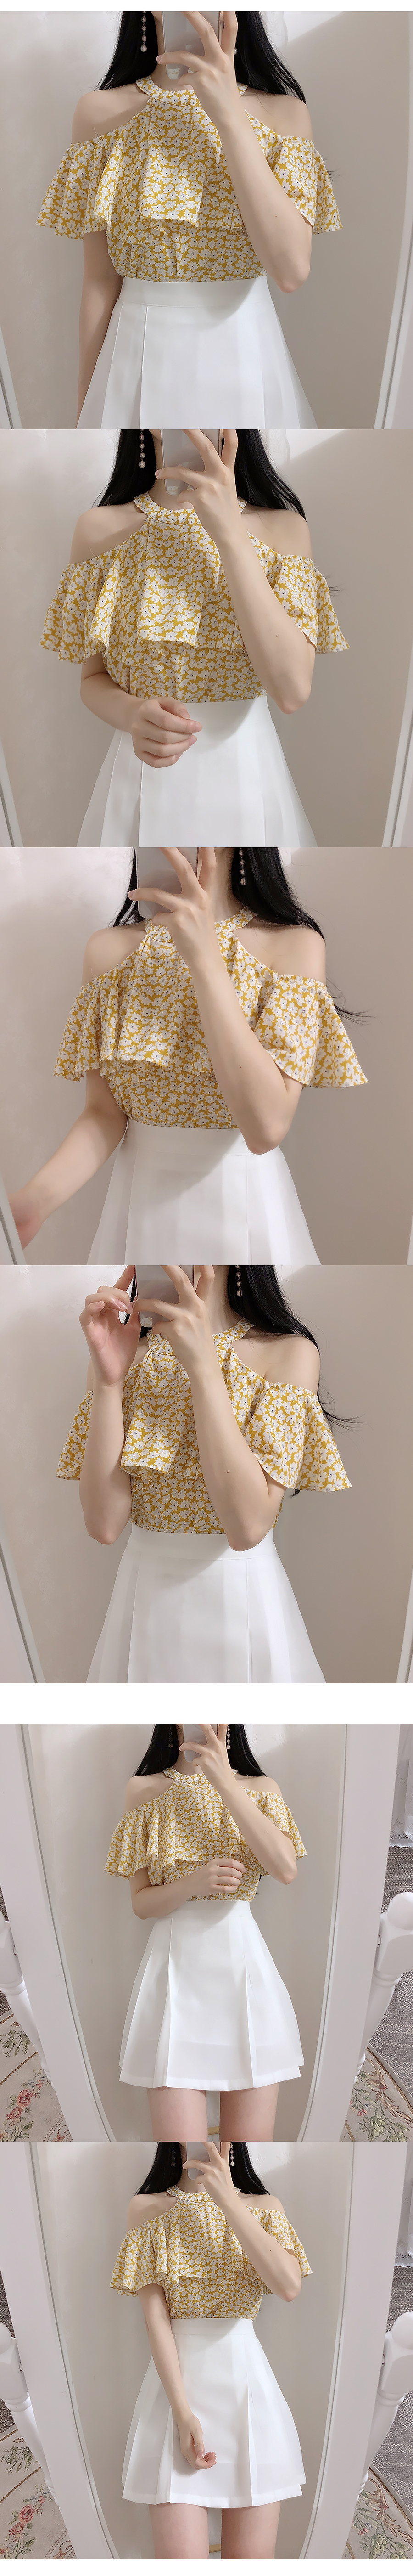 Self Made ♥ Joy Holter Shoulder blouse